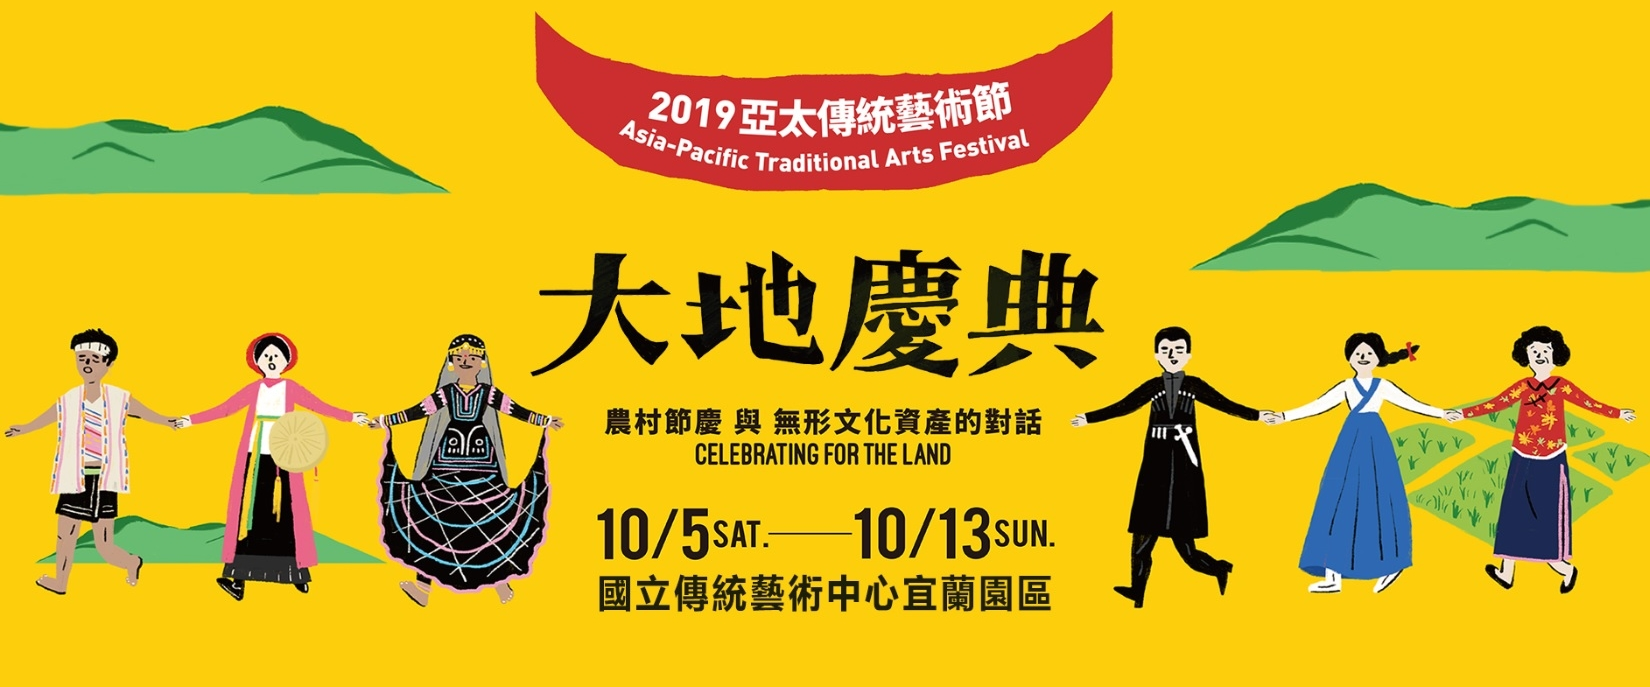 Traditional arts festival to spotlight Asia-Pacific intangible heritage[另開新視窗]